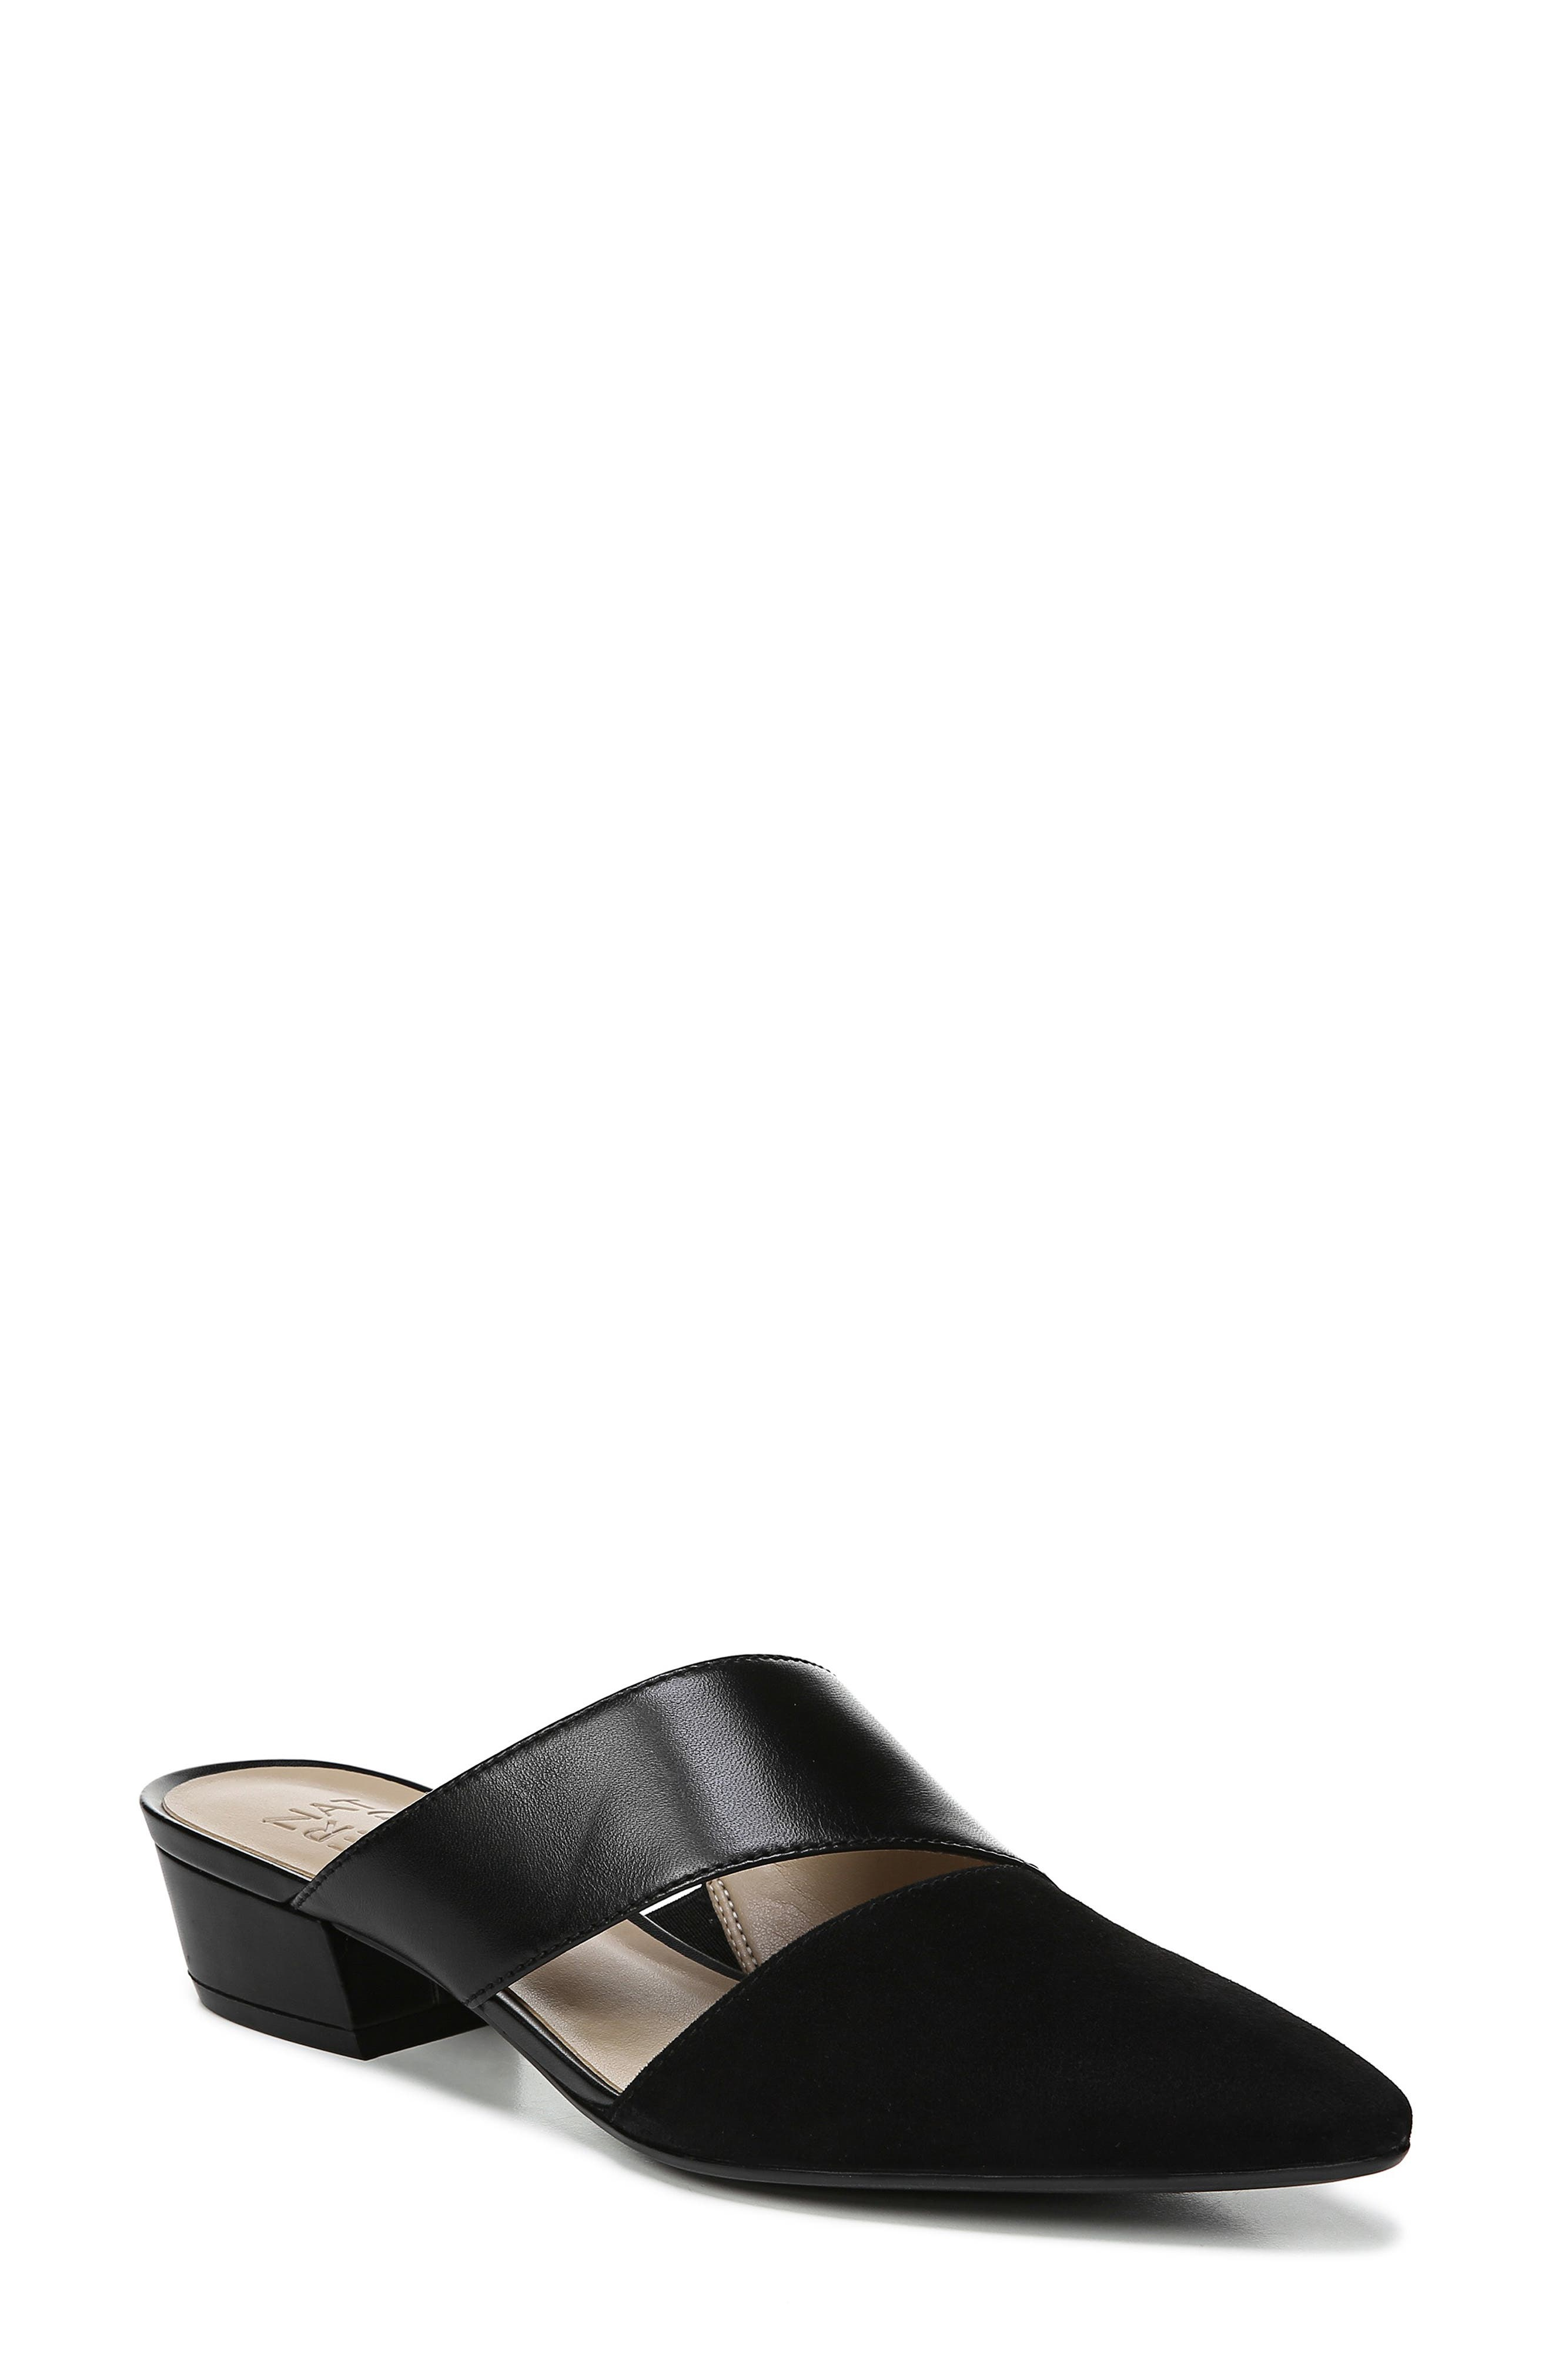 Naturalizer Bev Pointy Toe Mule, Black